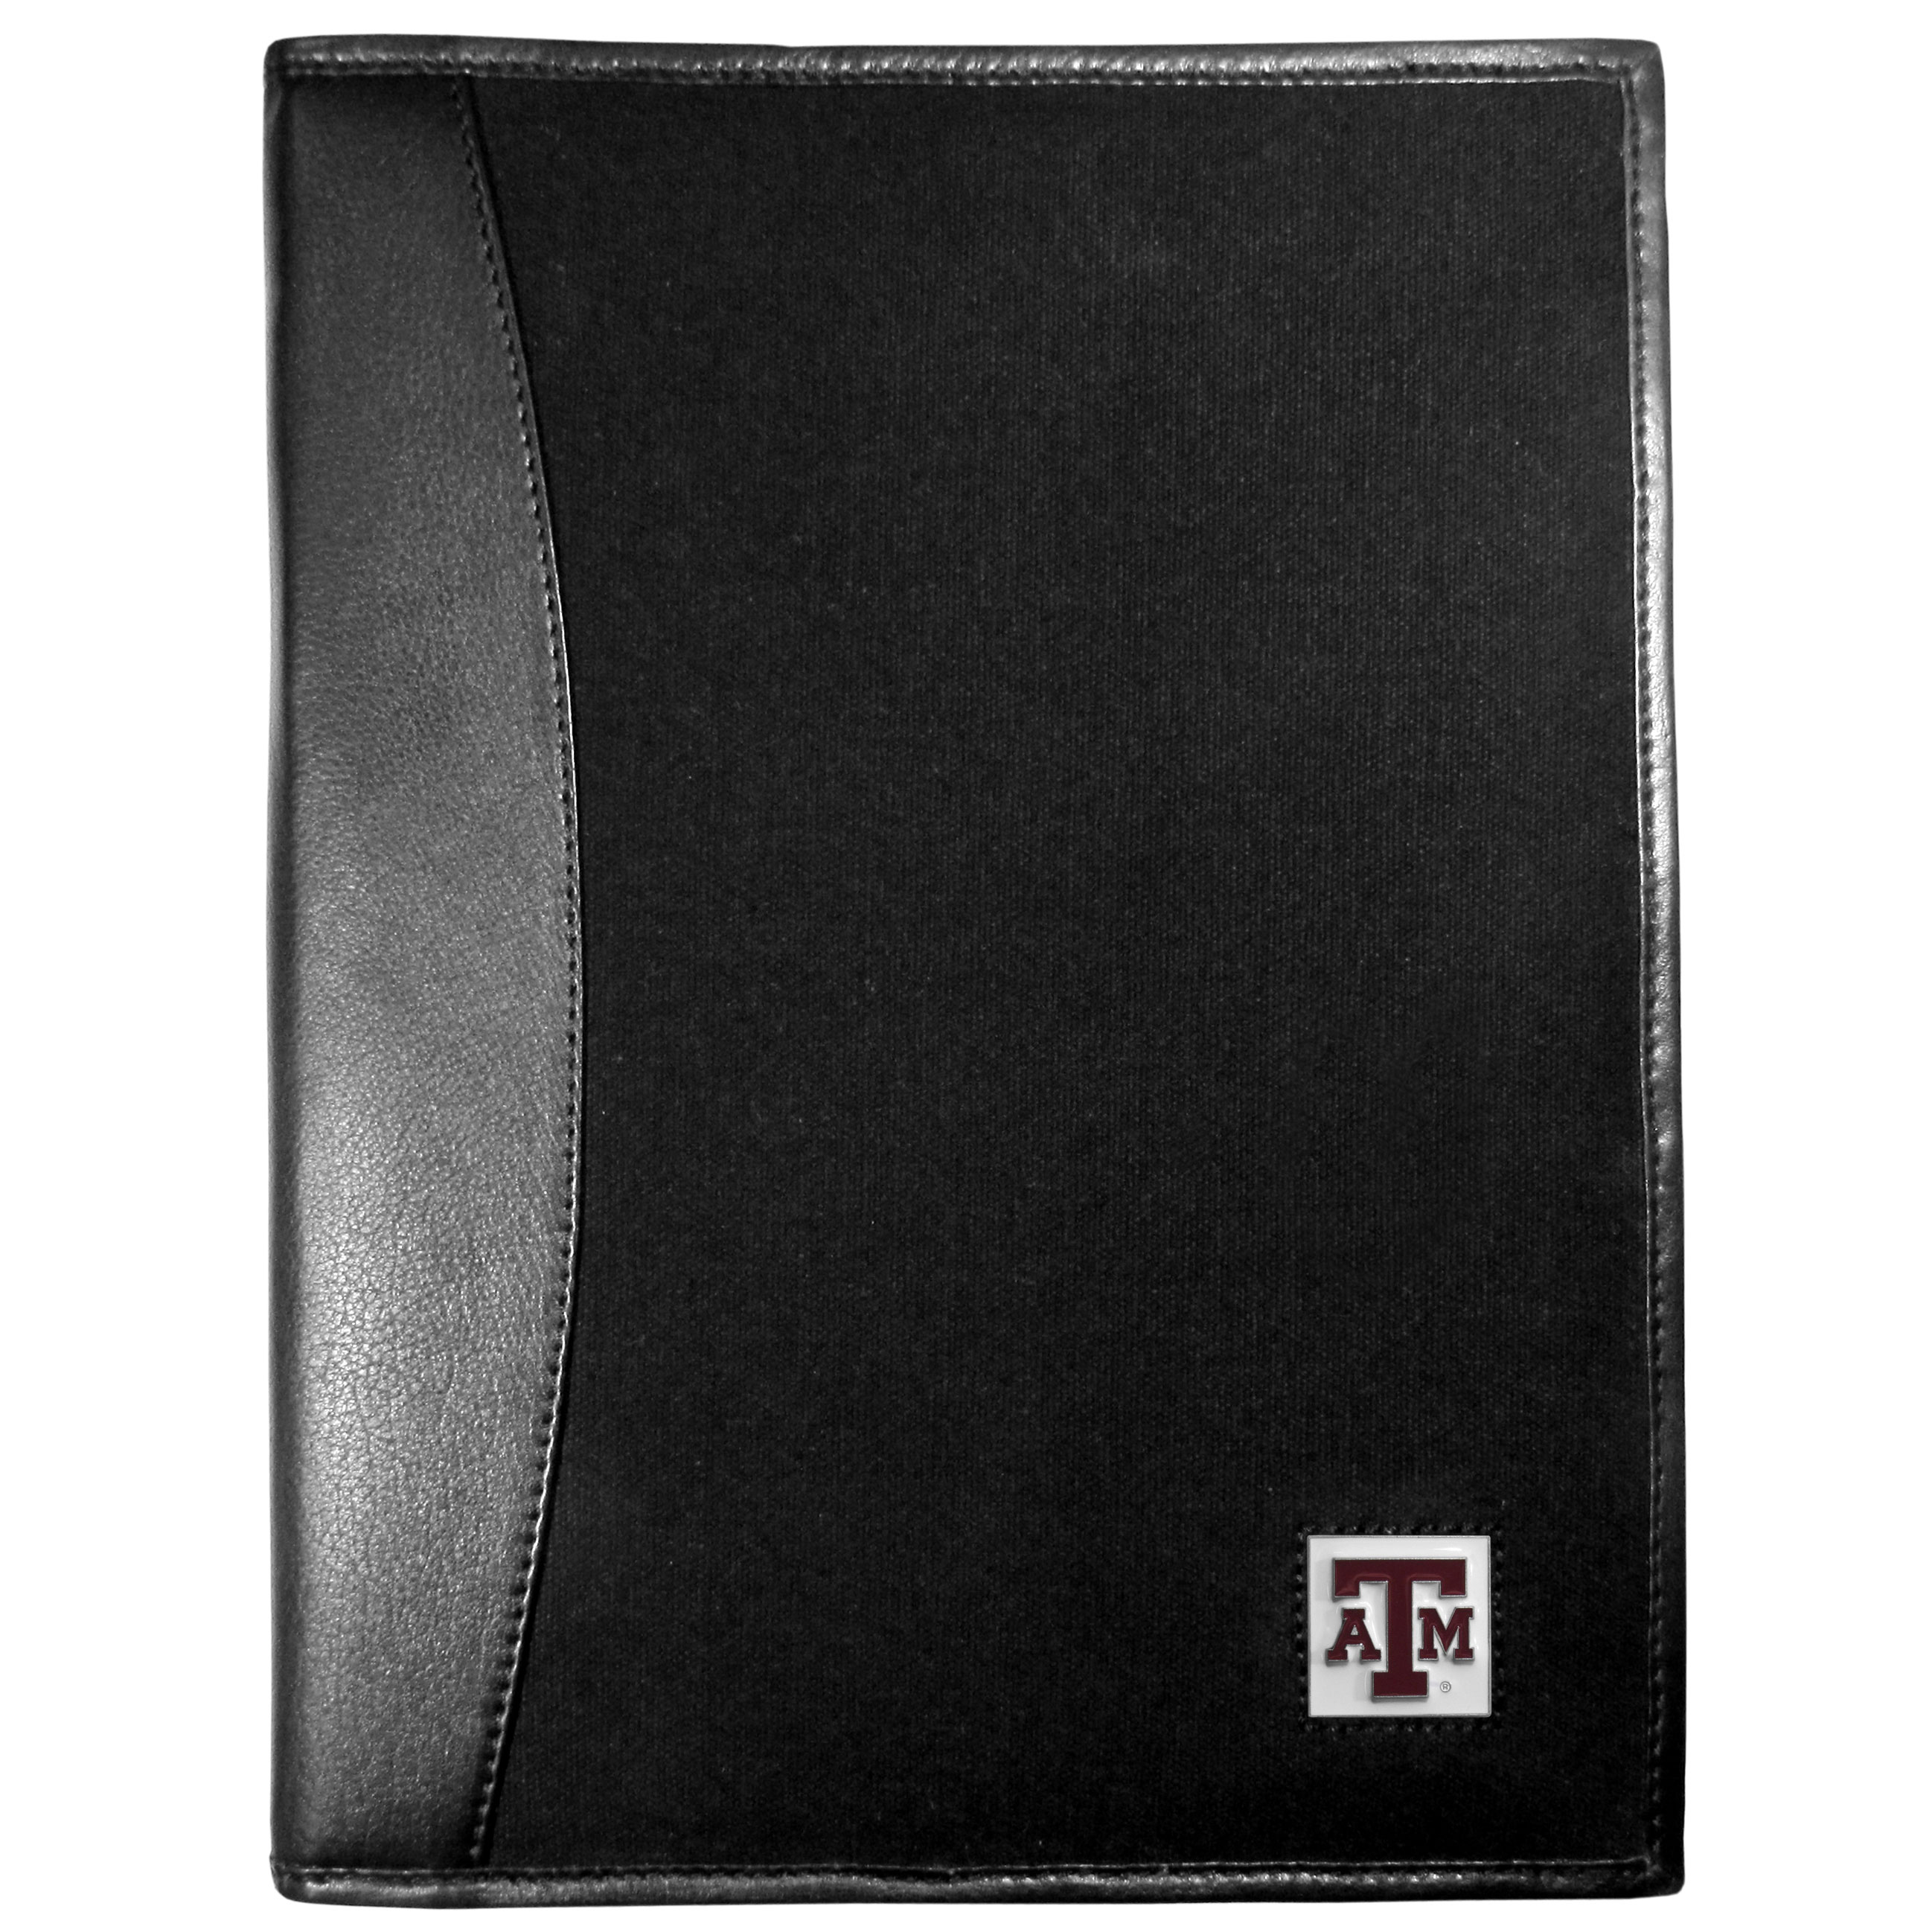 Texas A and M Aggies Leather and Canvas Padfolio - Our leather and canvas padfolio perfectly blends form and function. The attractive portfolio is bound in fine grain leather with an attractive canvas finish and the interior is a soft nylon. This high quality business accessory also features a fully cast metal Texas A & M Aggies emblem that is subtly set in the corner of the organizer. It is packed with features like 6 card slots for badges, business cards, hotel keys or credit cards and ID with a large pocket for loose papers and a writing tablet slot making it a must-have for the professional on the go.